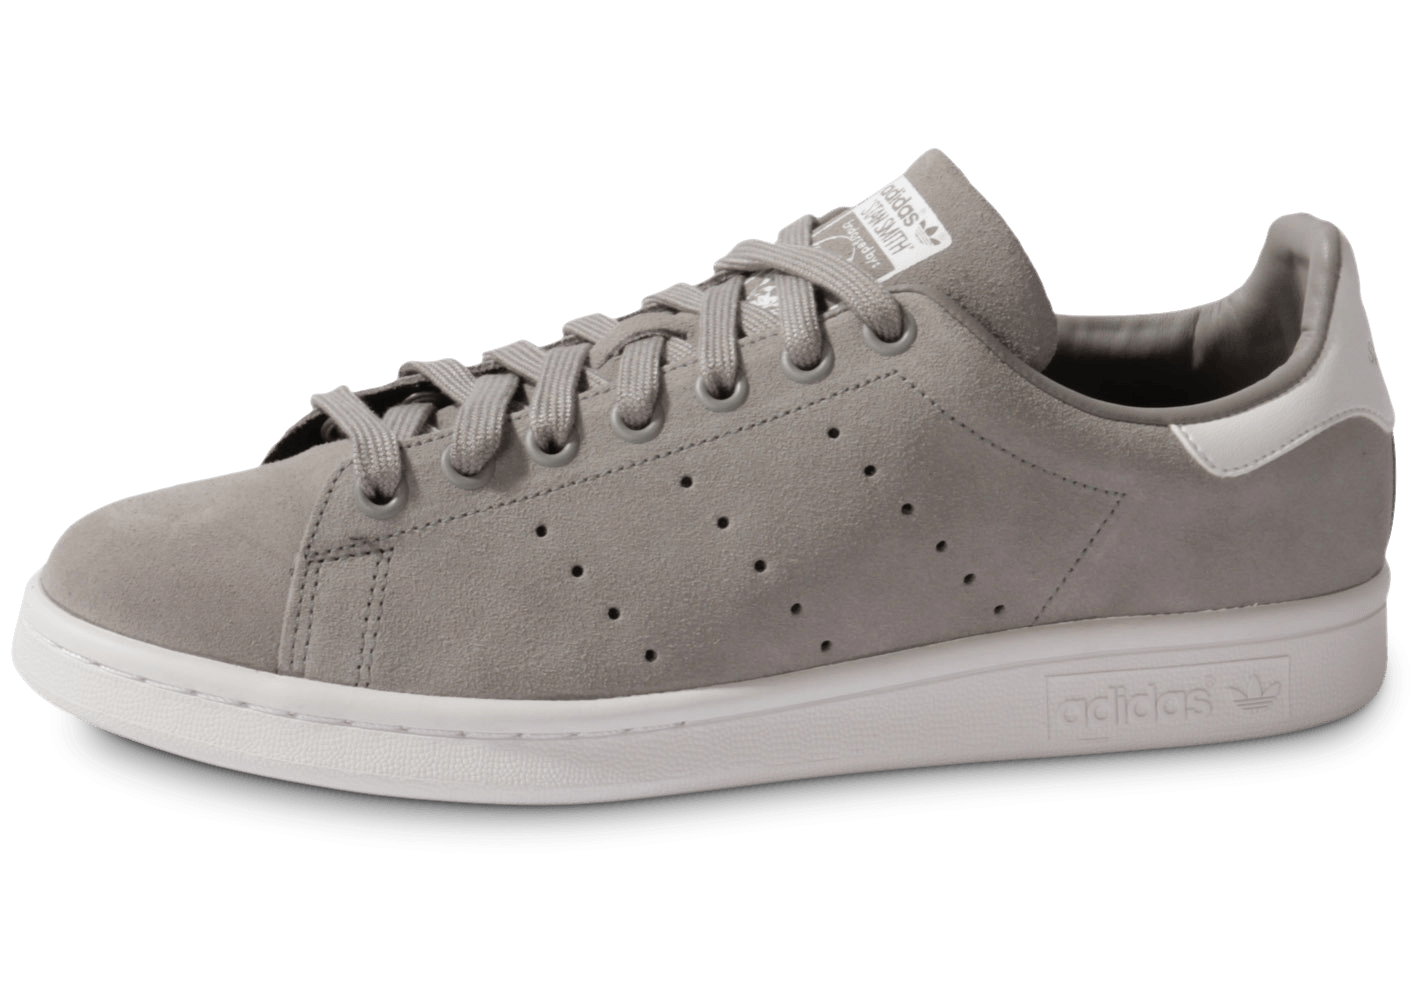 chaussures adidas basses homme adidas superstar glitter